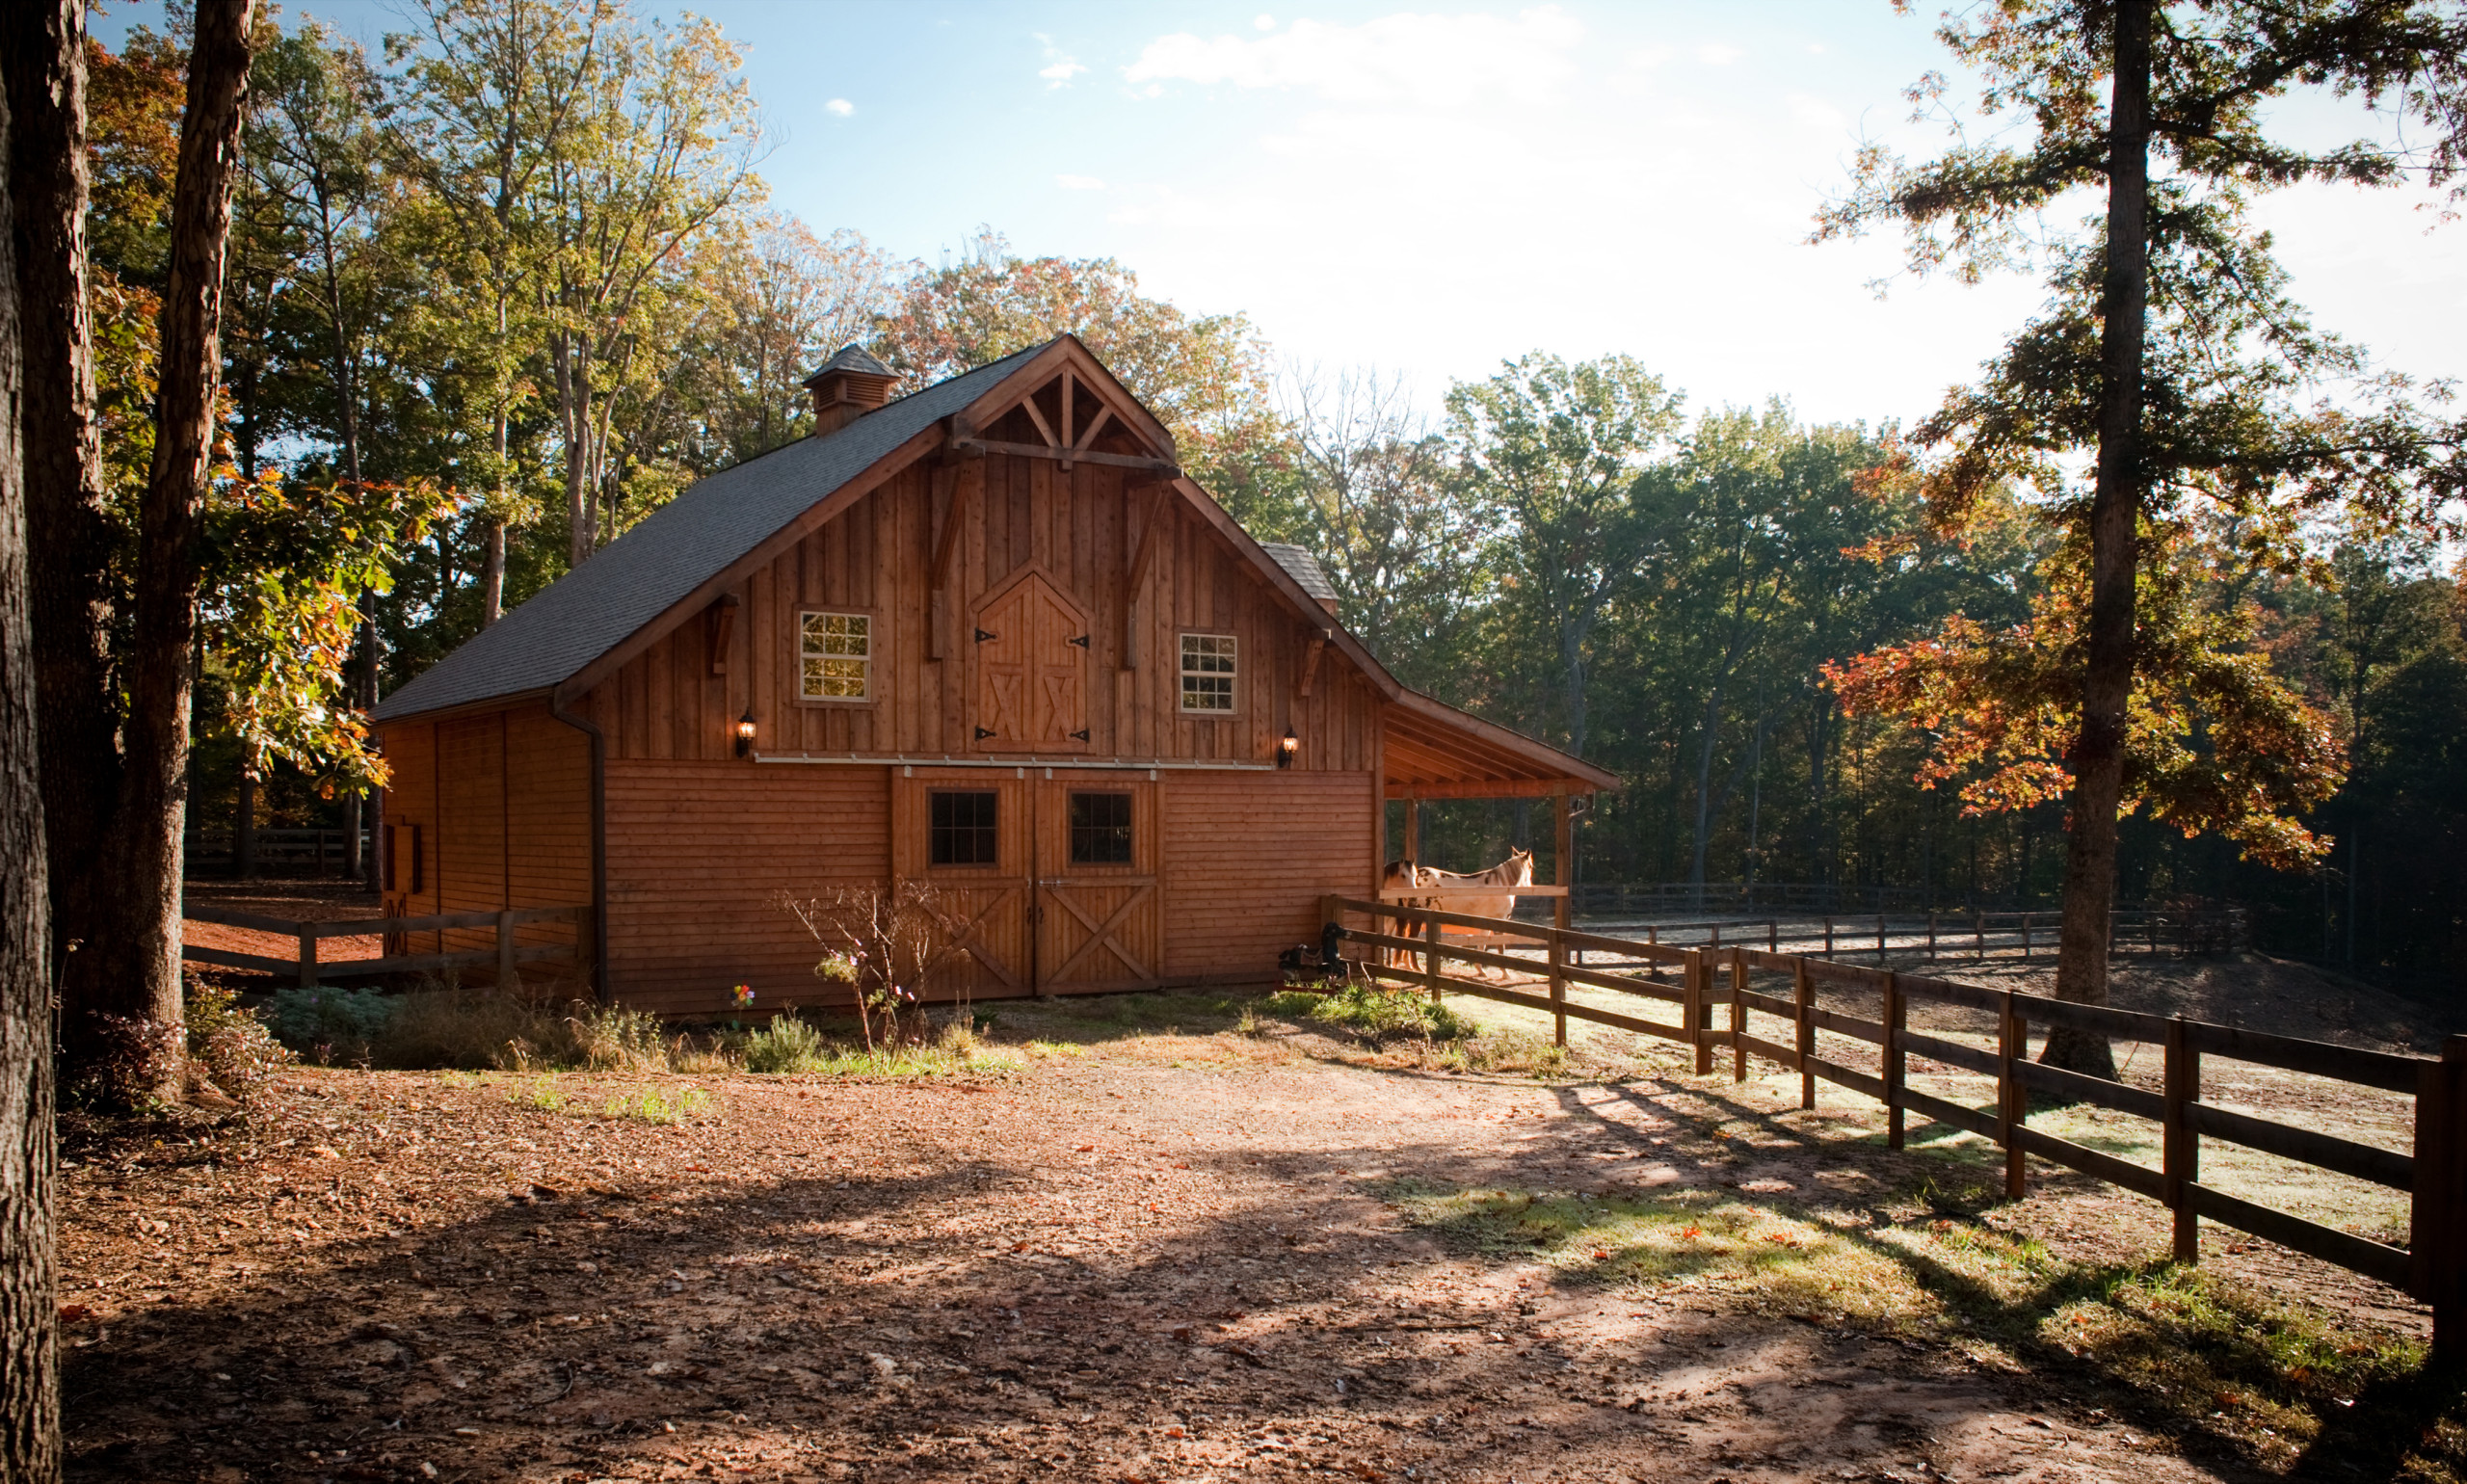 75 Beautiful Rustic Barn Pictures Ideas December 2020 Houzz